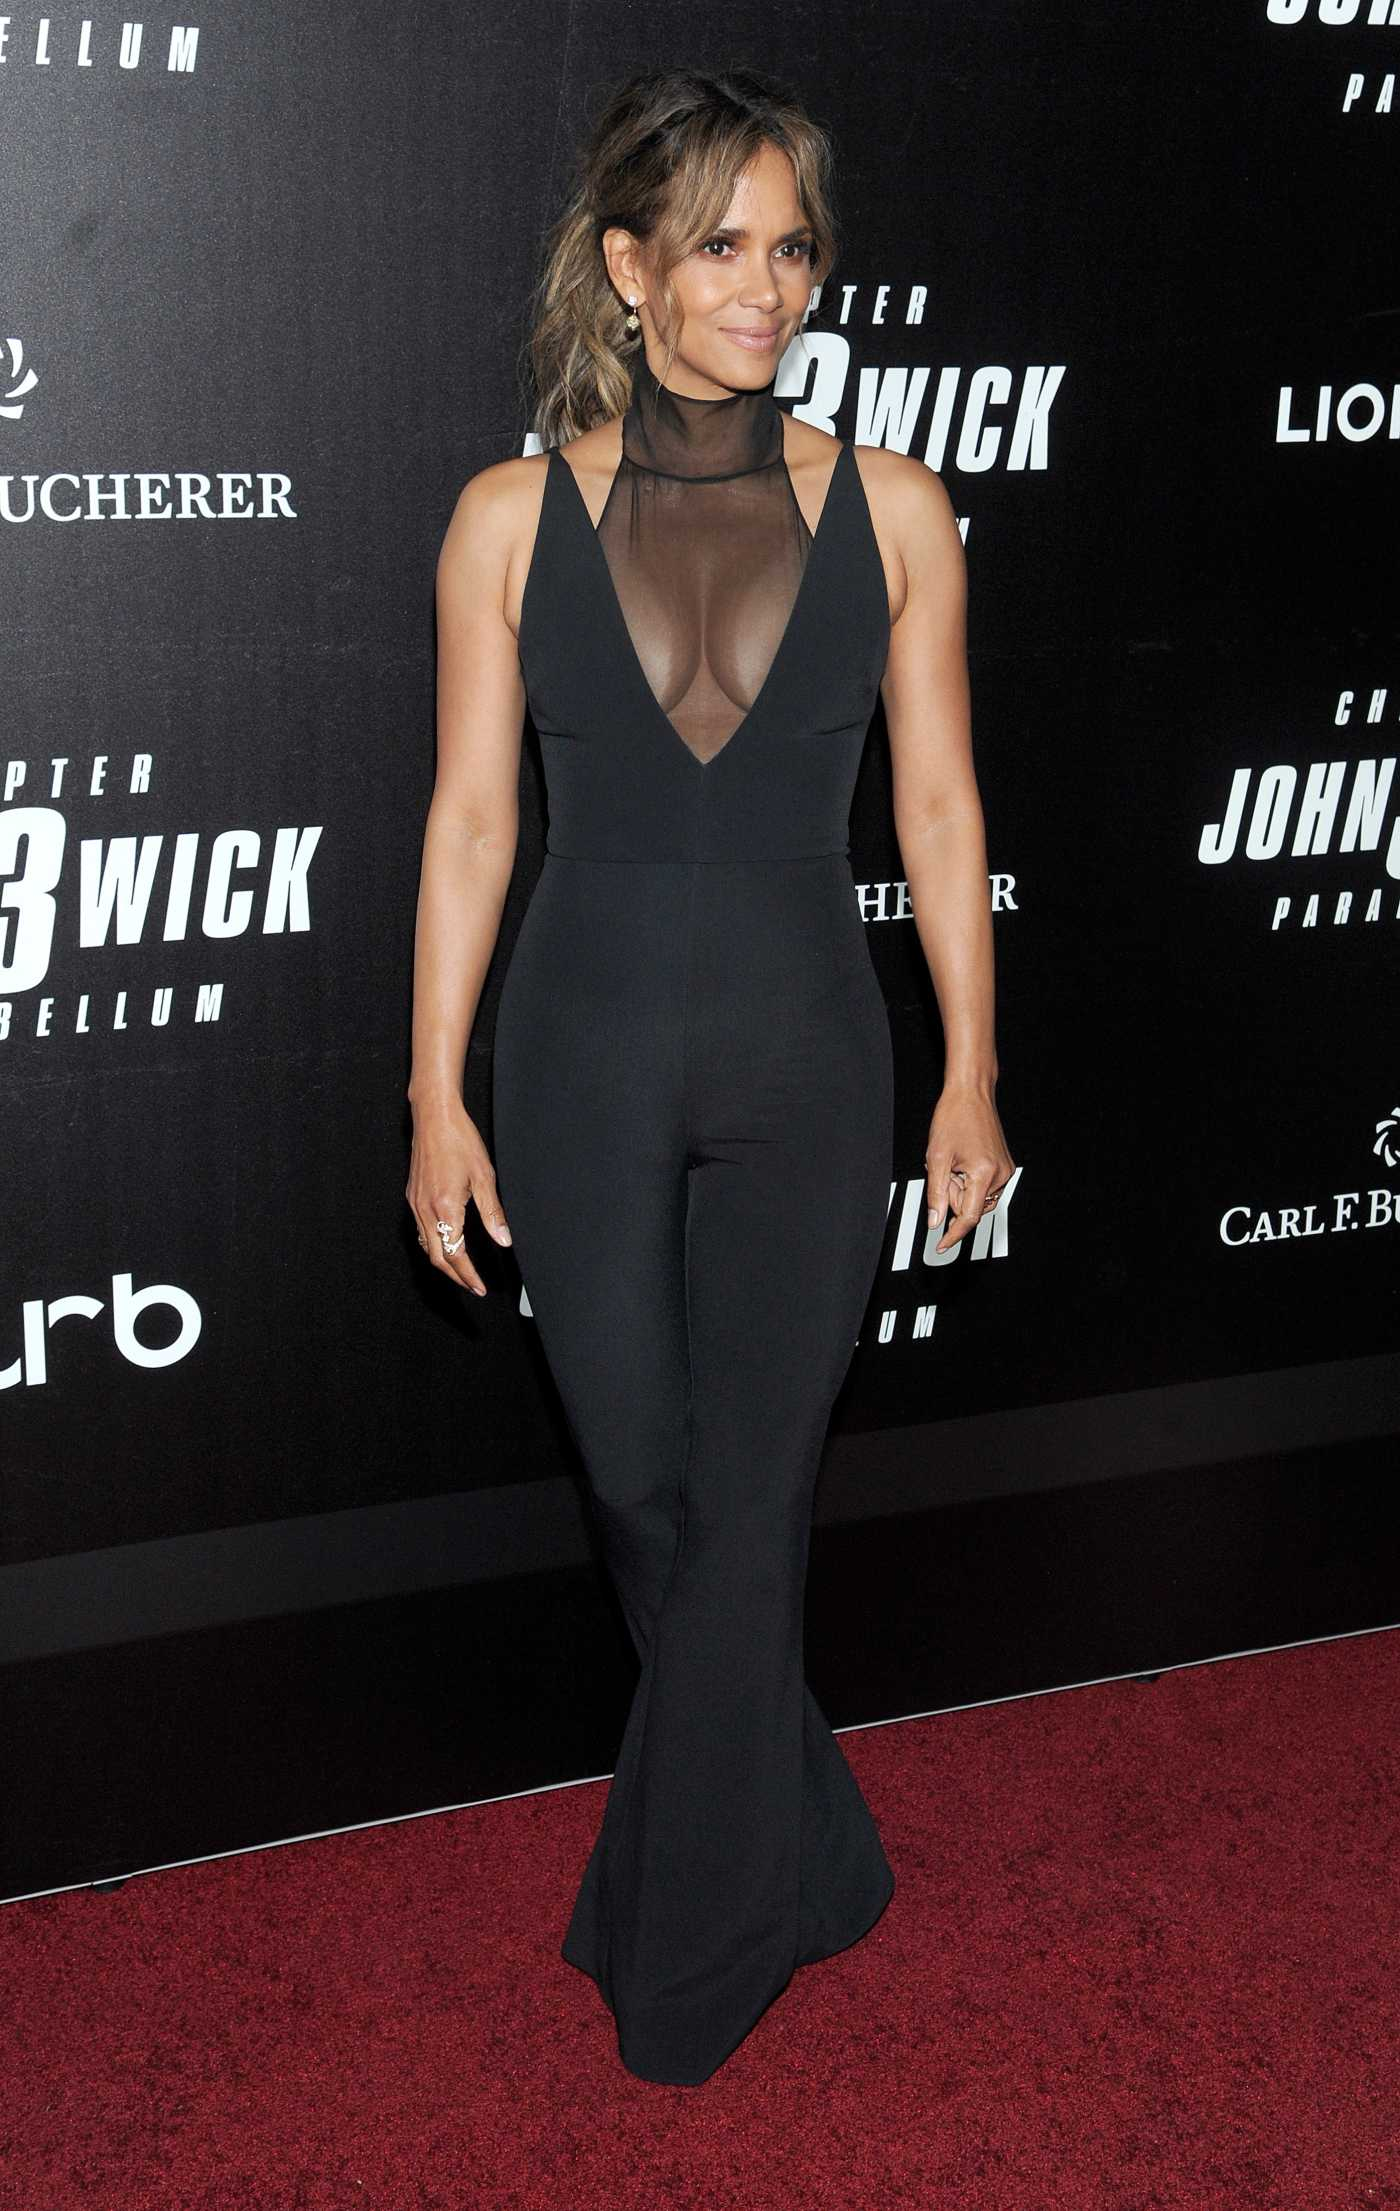 Halle Berry Attends the John Wick: Chapter 3 World Premiere in NYC 05/09/2019